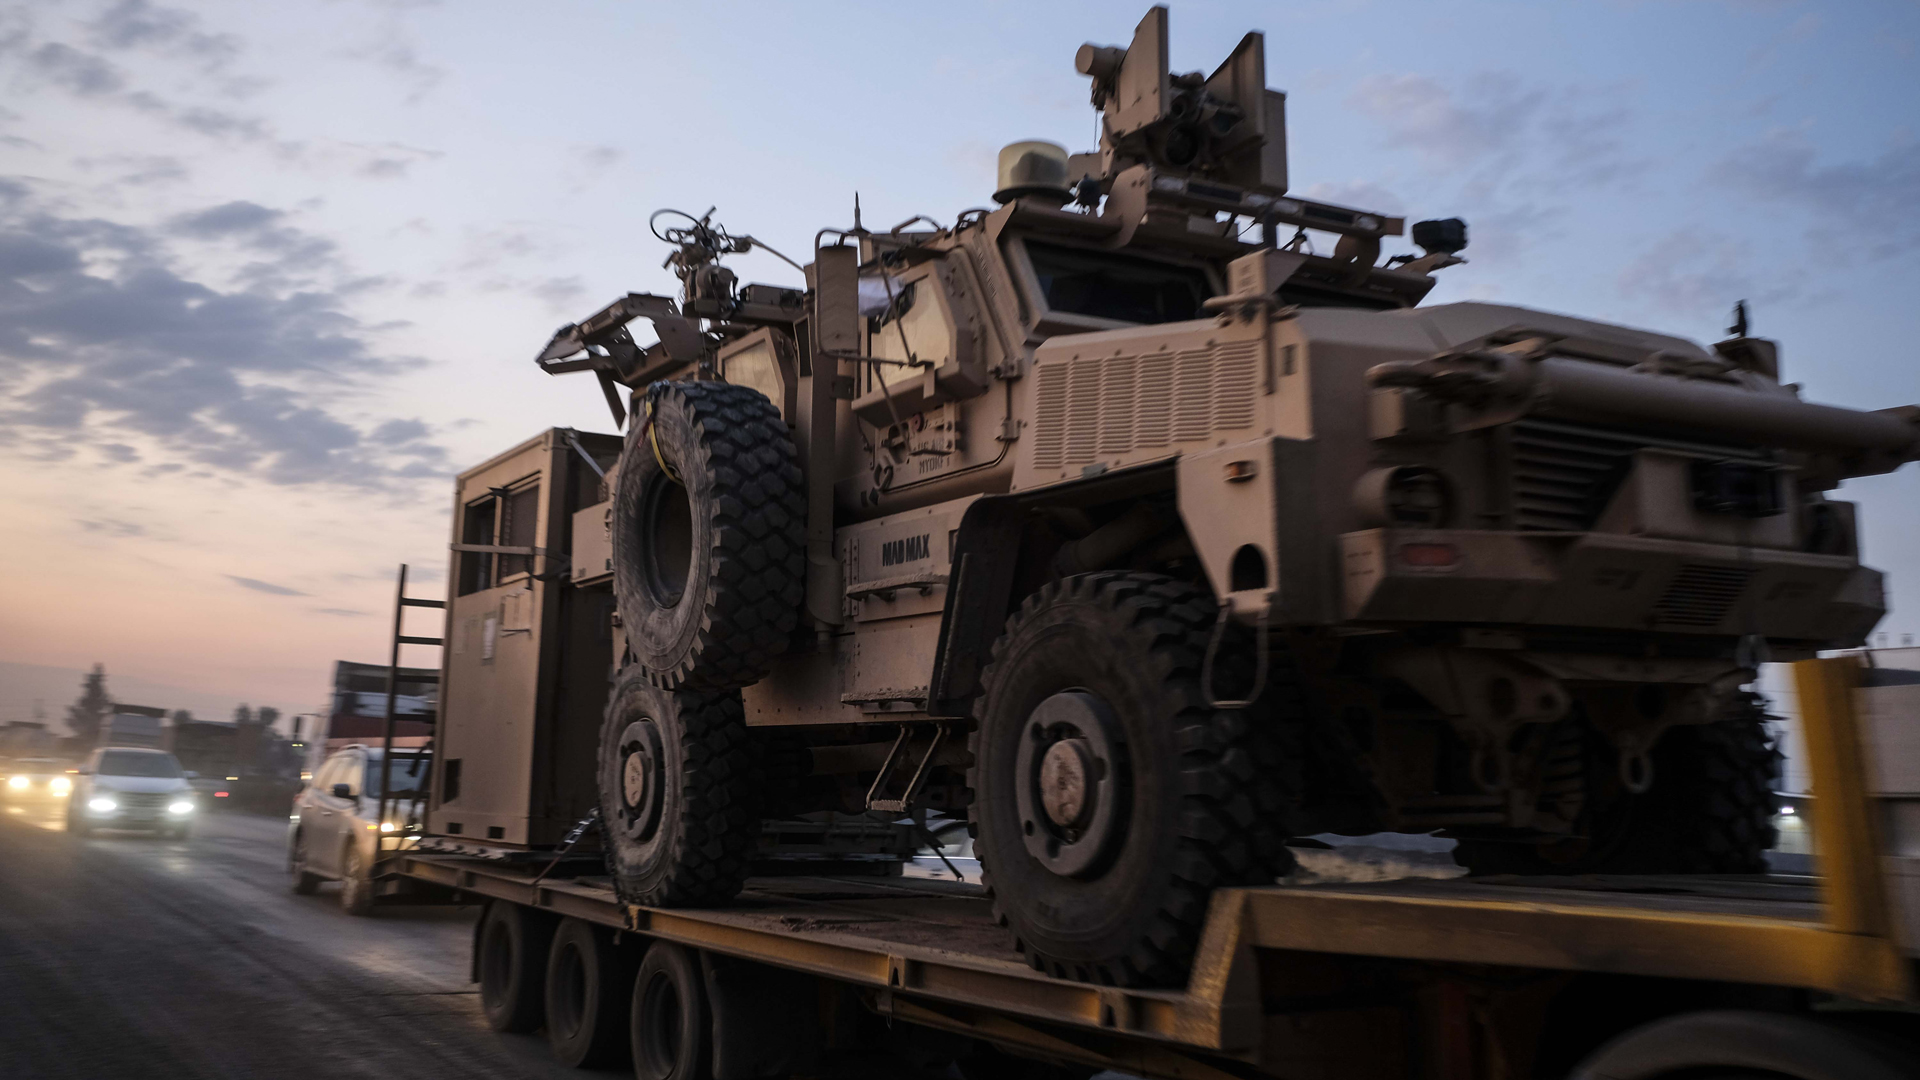 A convoy of U.S. armored military vehicles leave Syria on a road to Iraq on October 19, 2019 in Sheikhan, Iraq. (Credit: Byron Smith/Getty Images)